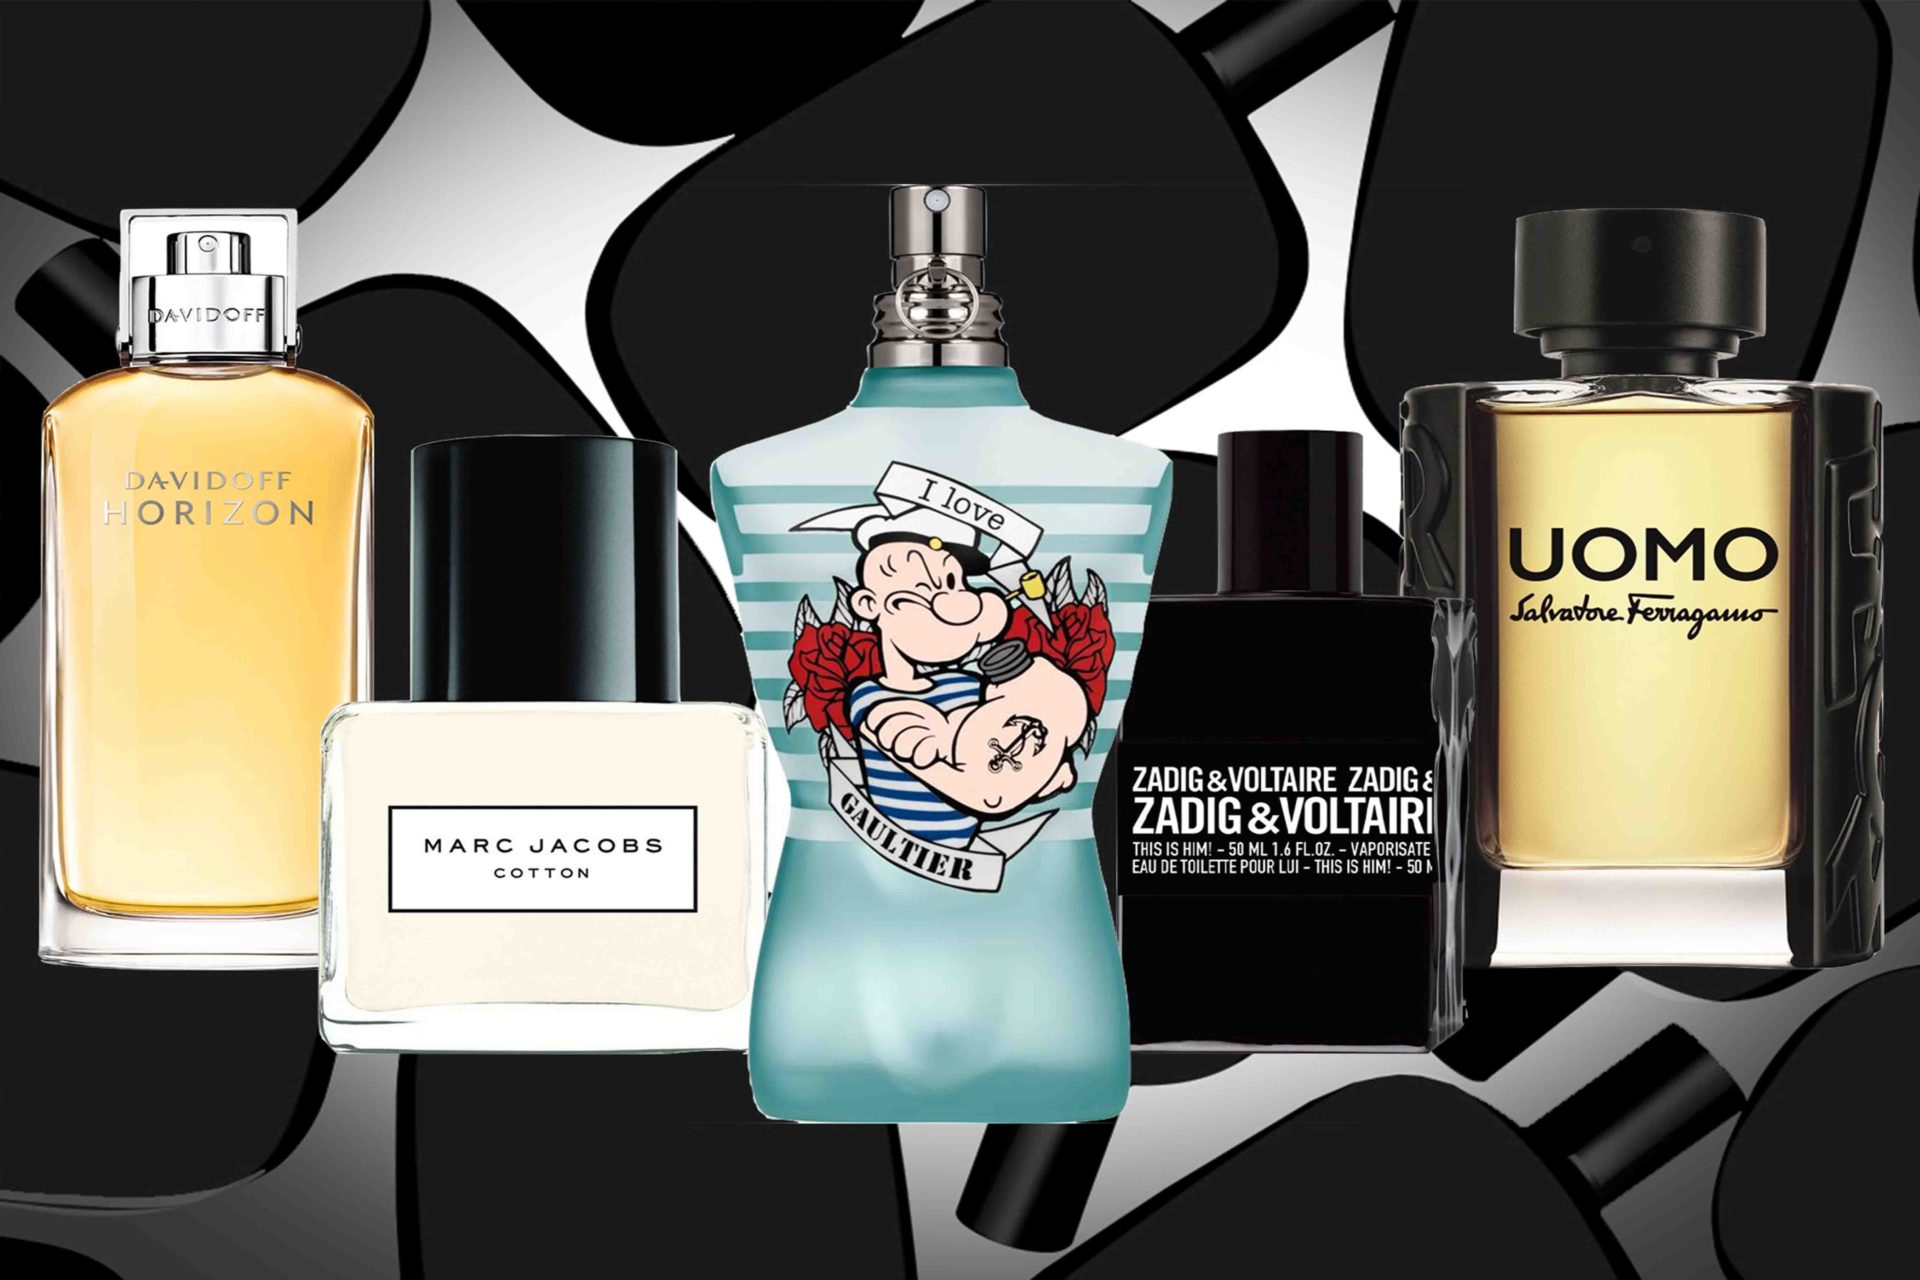 Parfum Highlights for men 2016/2017